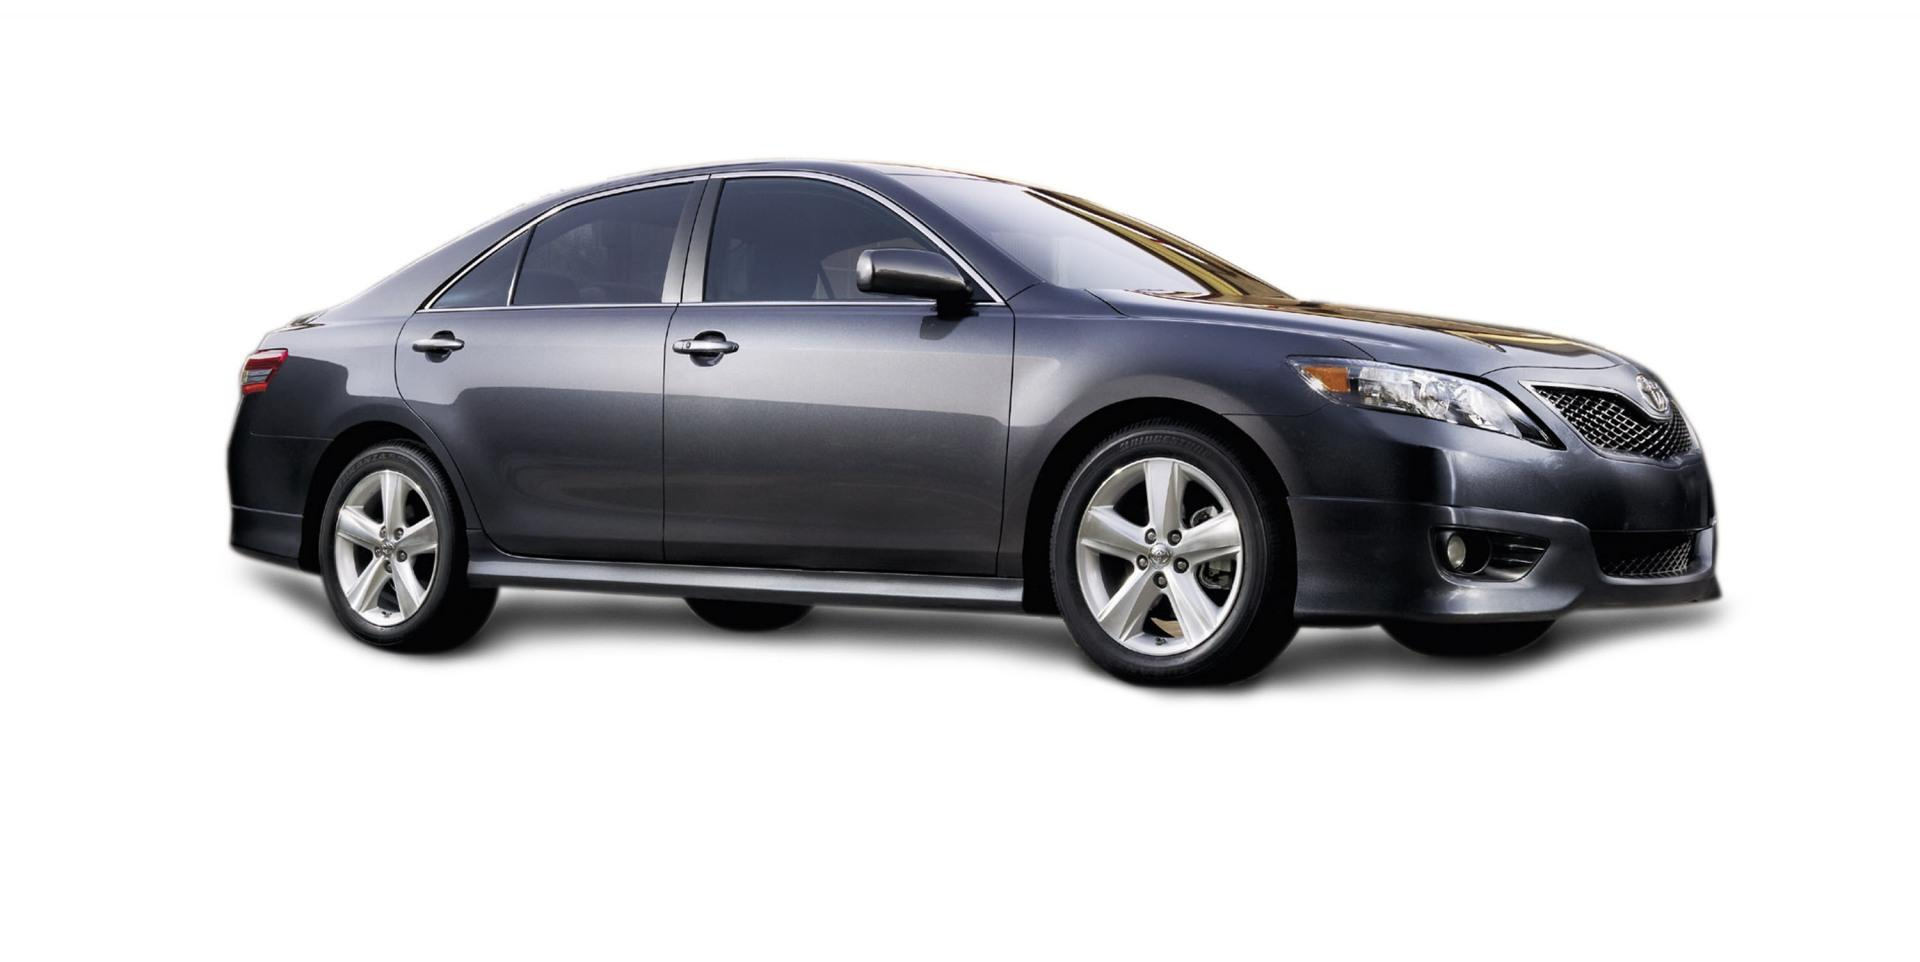 2010 toyota camry technical specifications and data engine dimensions and mechanical details conceptcarz com